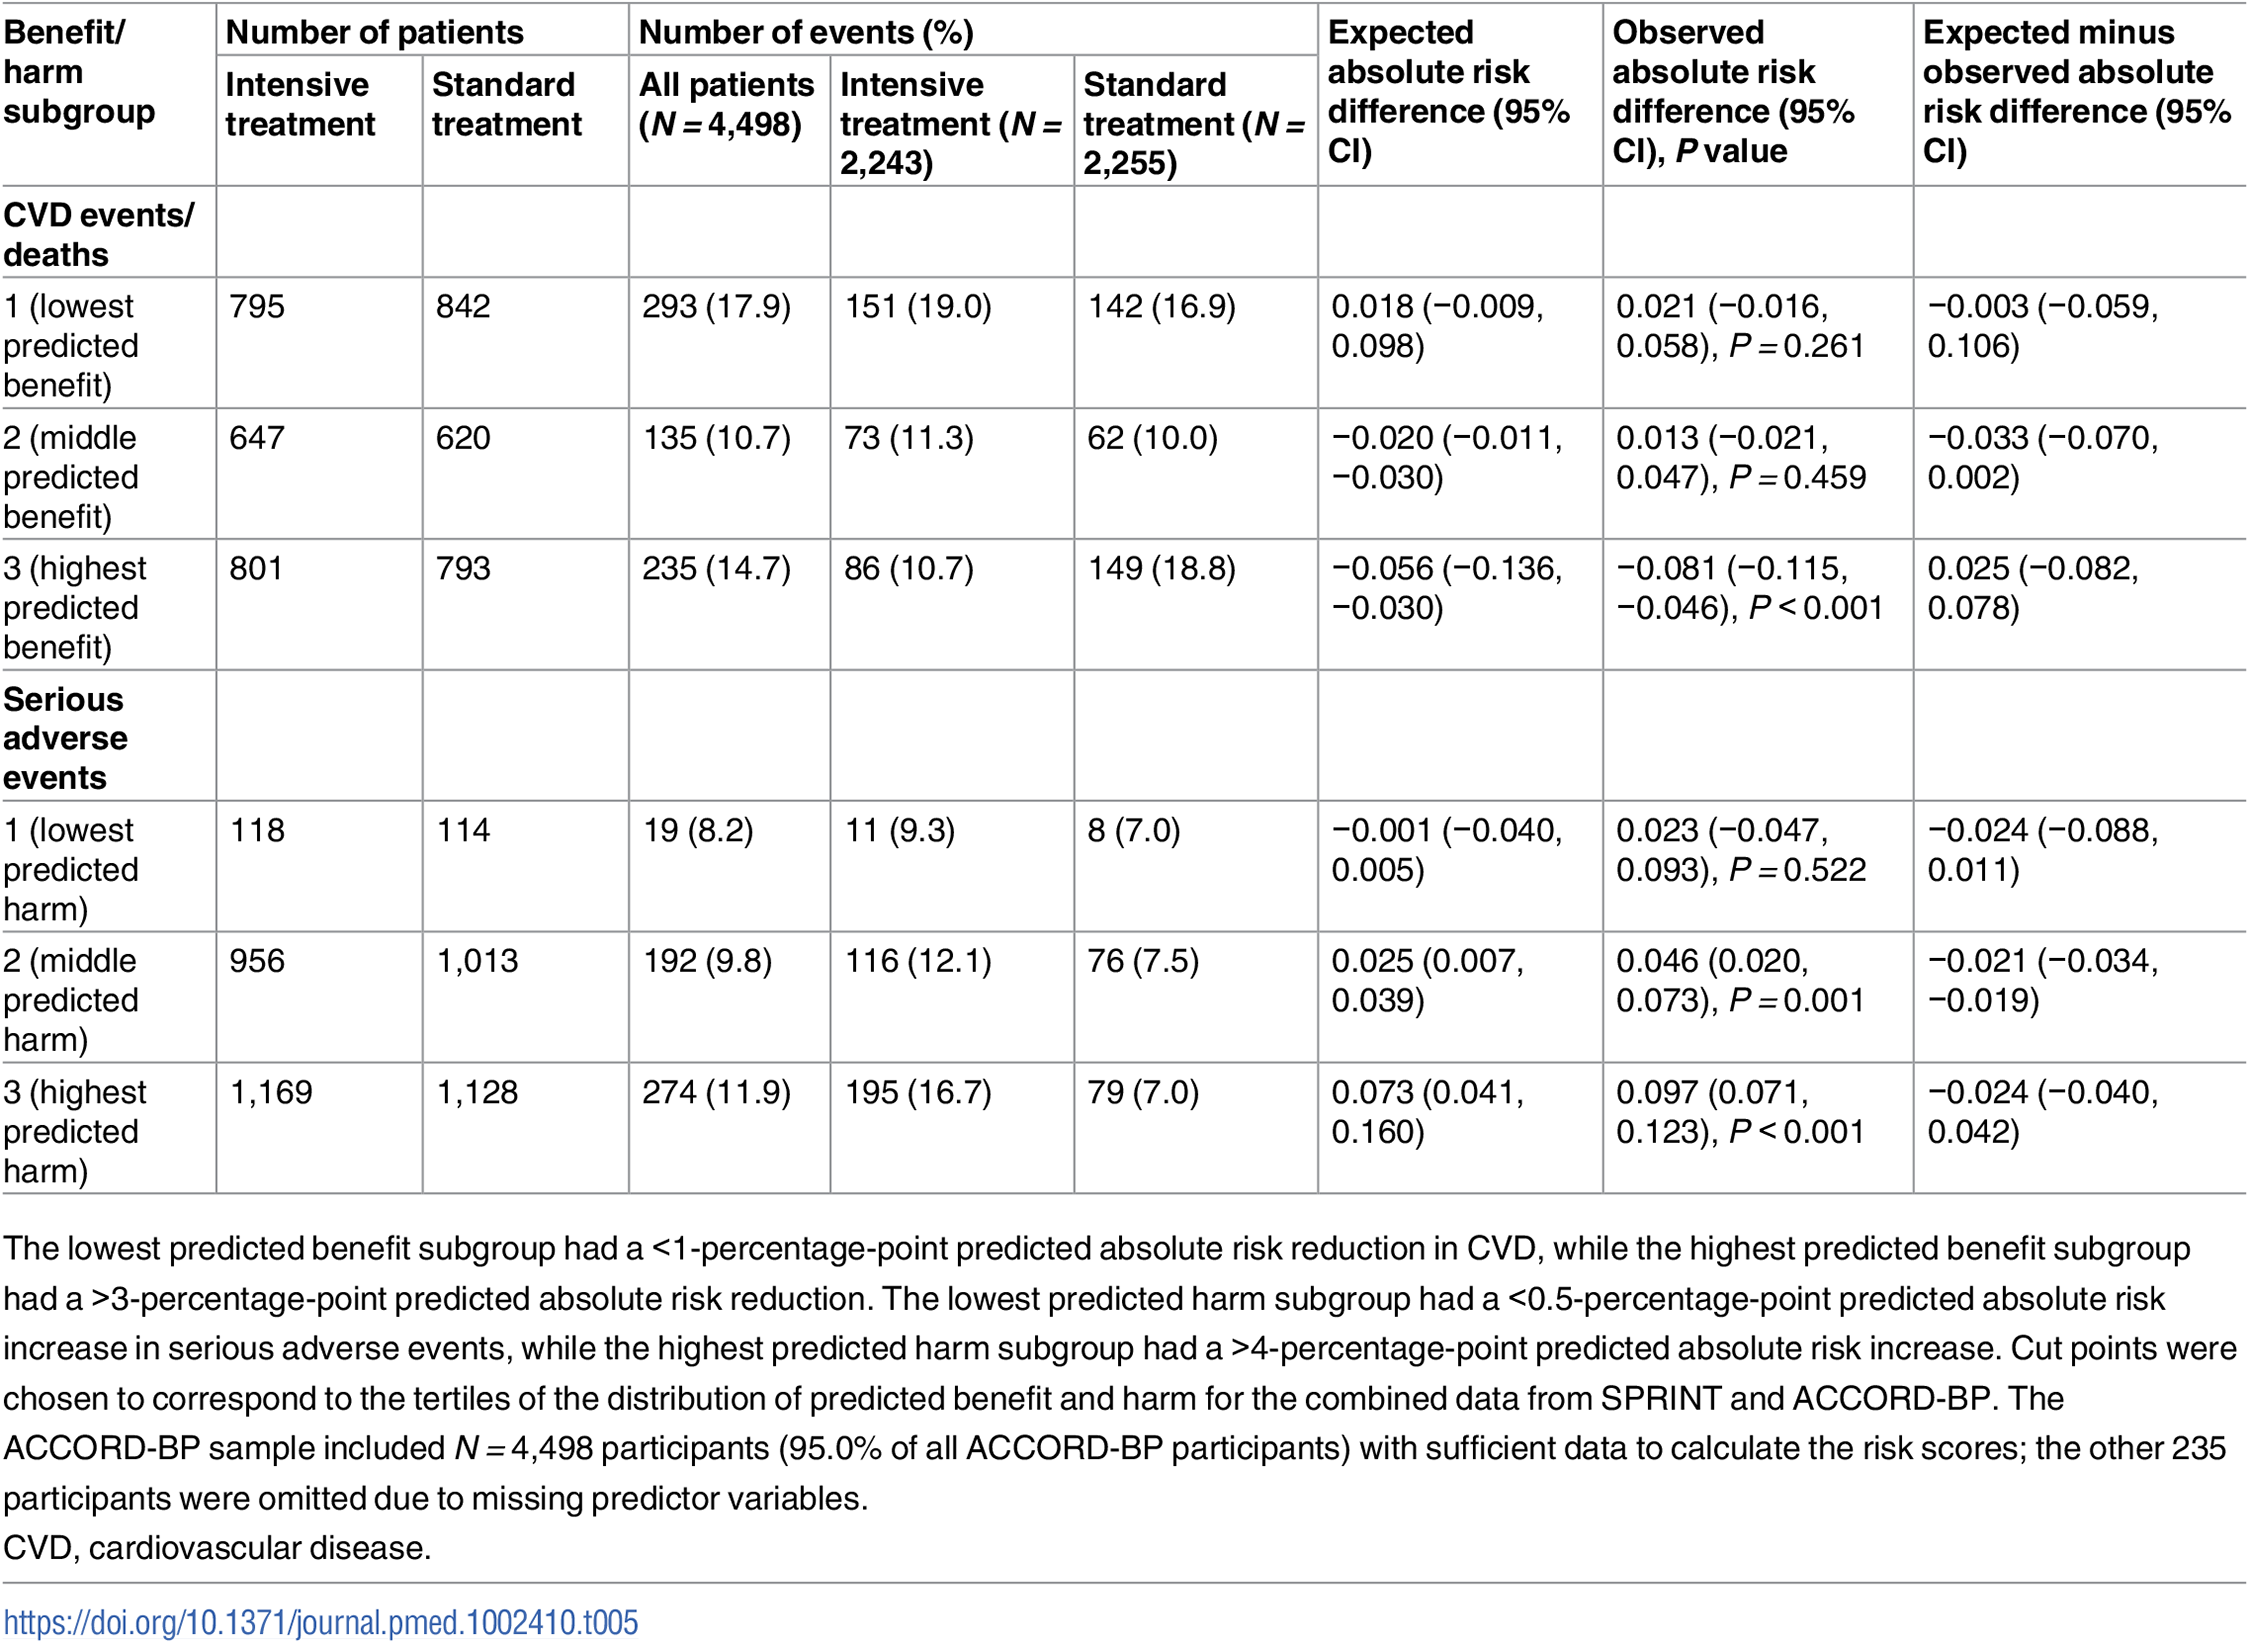 Observed outcomes by treatment arm and by the ACCORD-BP trial population's predicted benefit/harm (validation cohort).